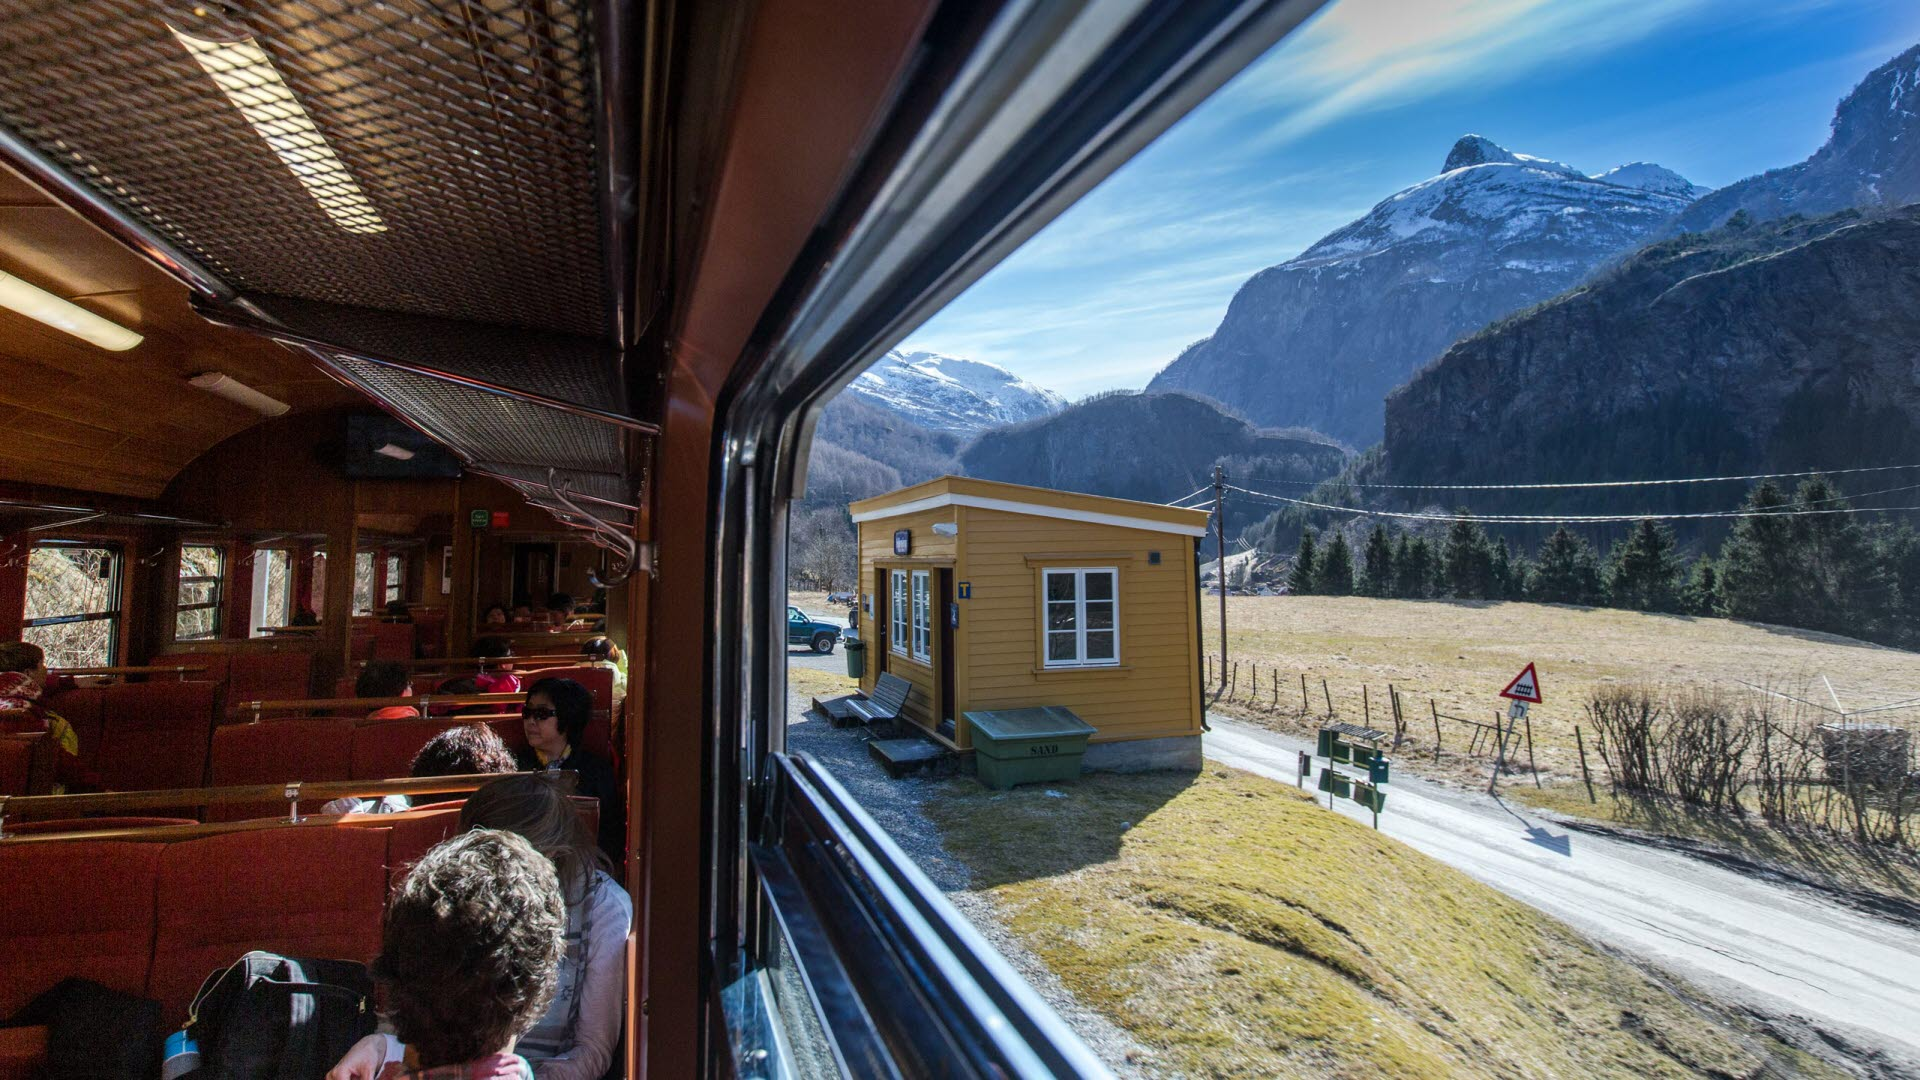 Experience the Flam Railway in spring